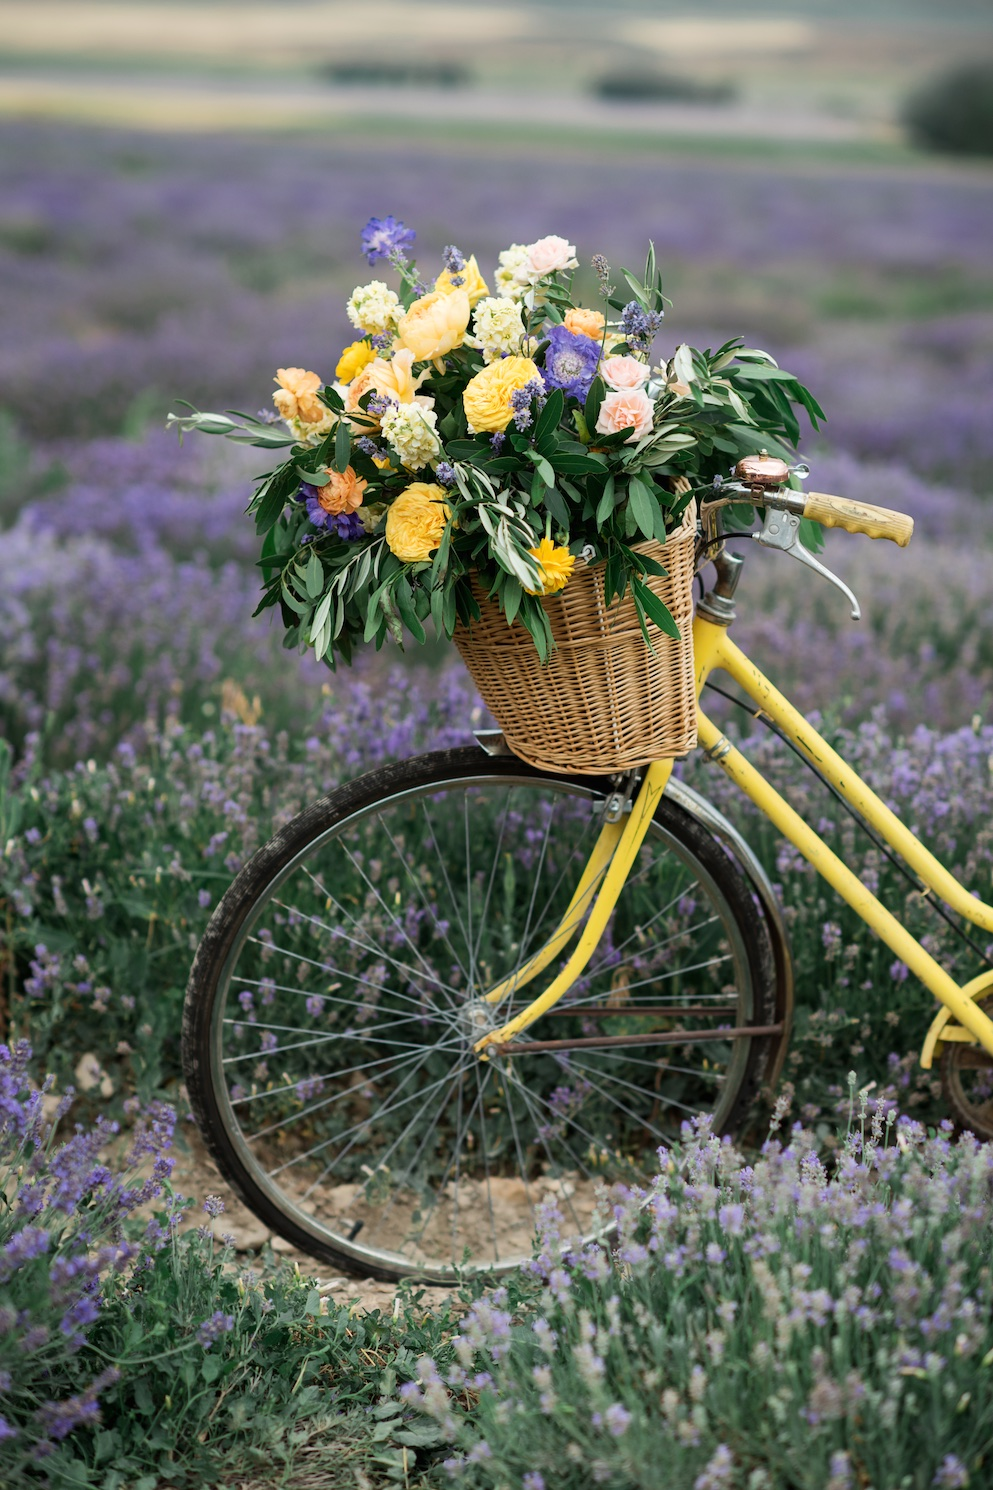 South of France Wedding, lavender field wedding, lavender wedding ideas, lavender inspired wedding, wedding flowers utah calie rose, bicycle flowers, vintage bicycle with flowers